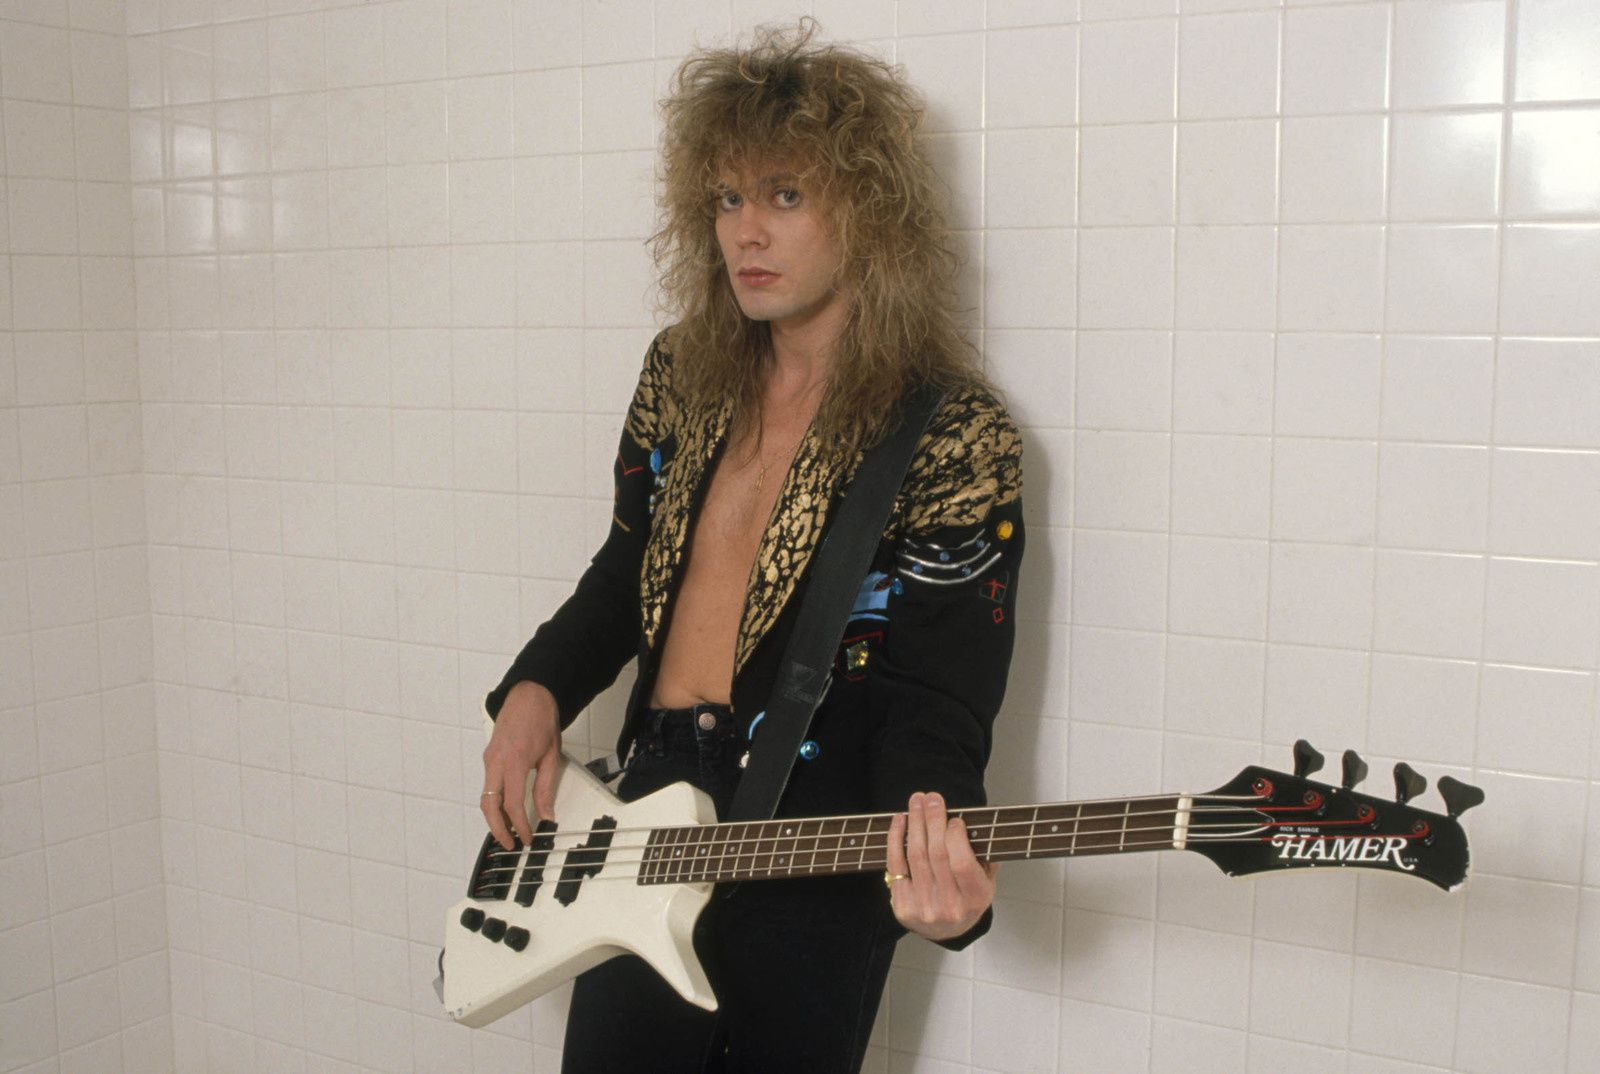 Rick Savage, bassist and one of the founding members of the English rock band, Def Leppard